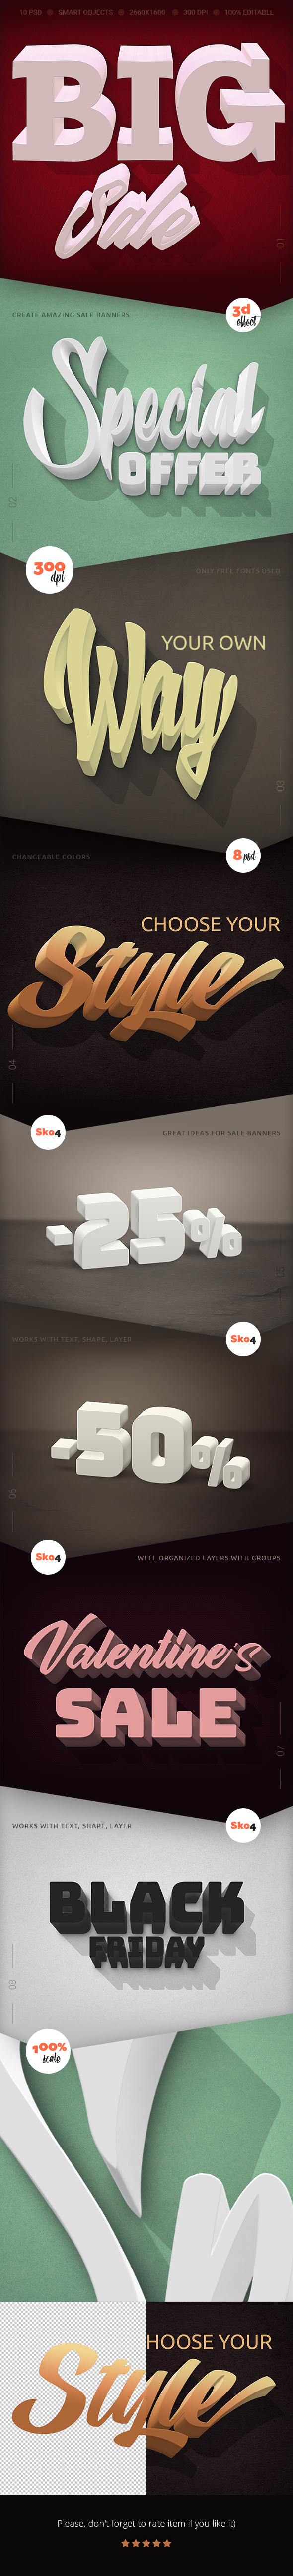 3D Effects - 8 PSD Mockups - Text Effects Actions